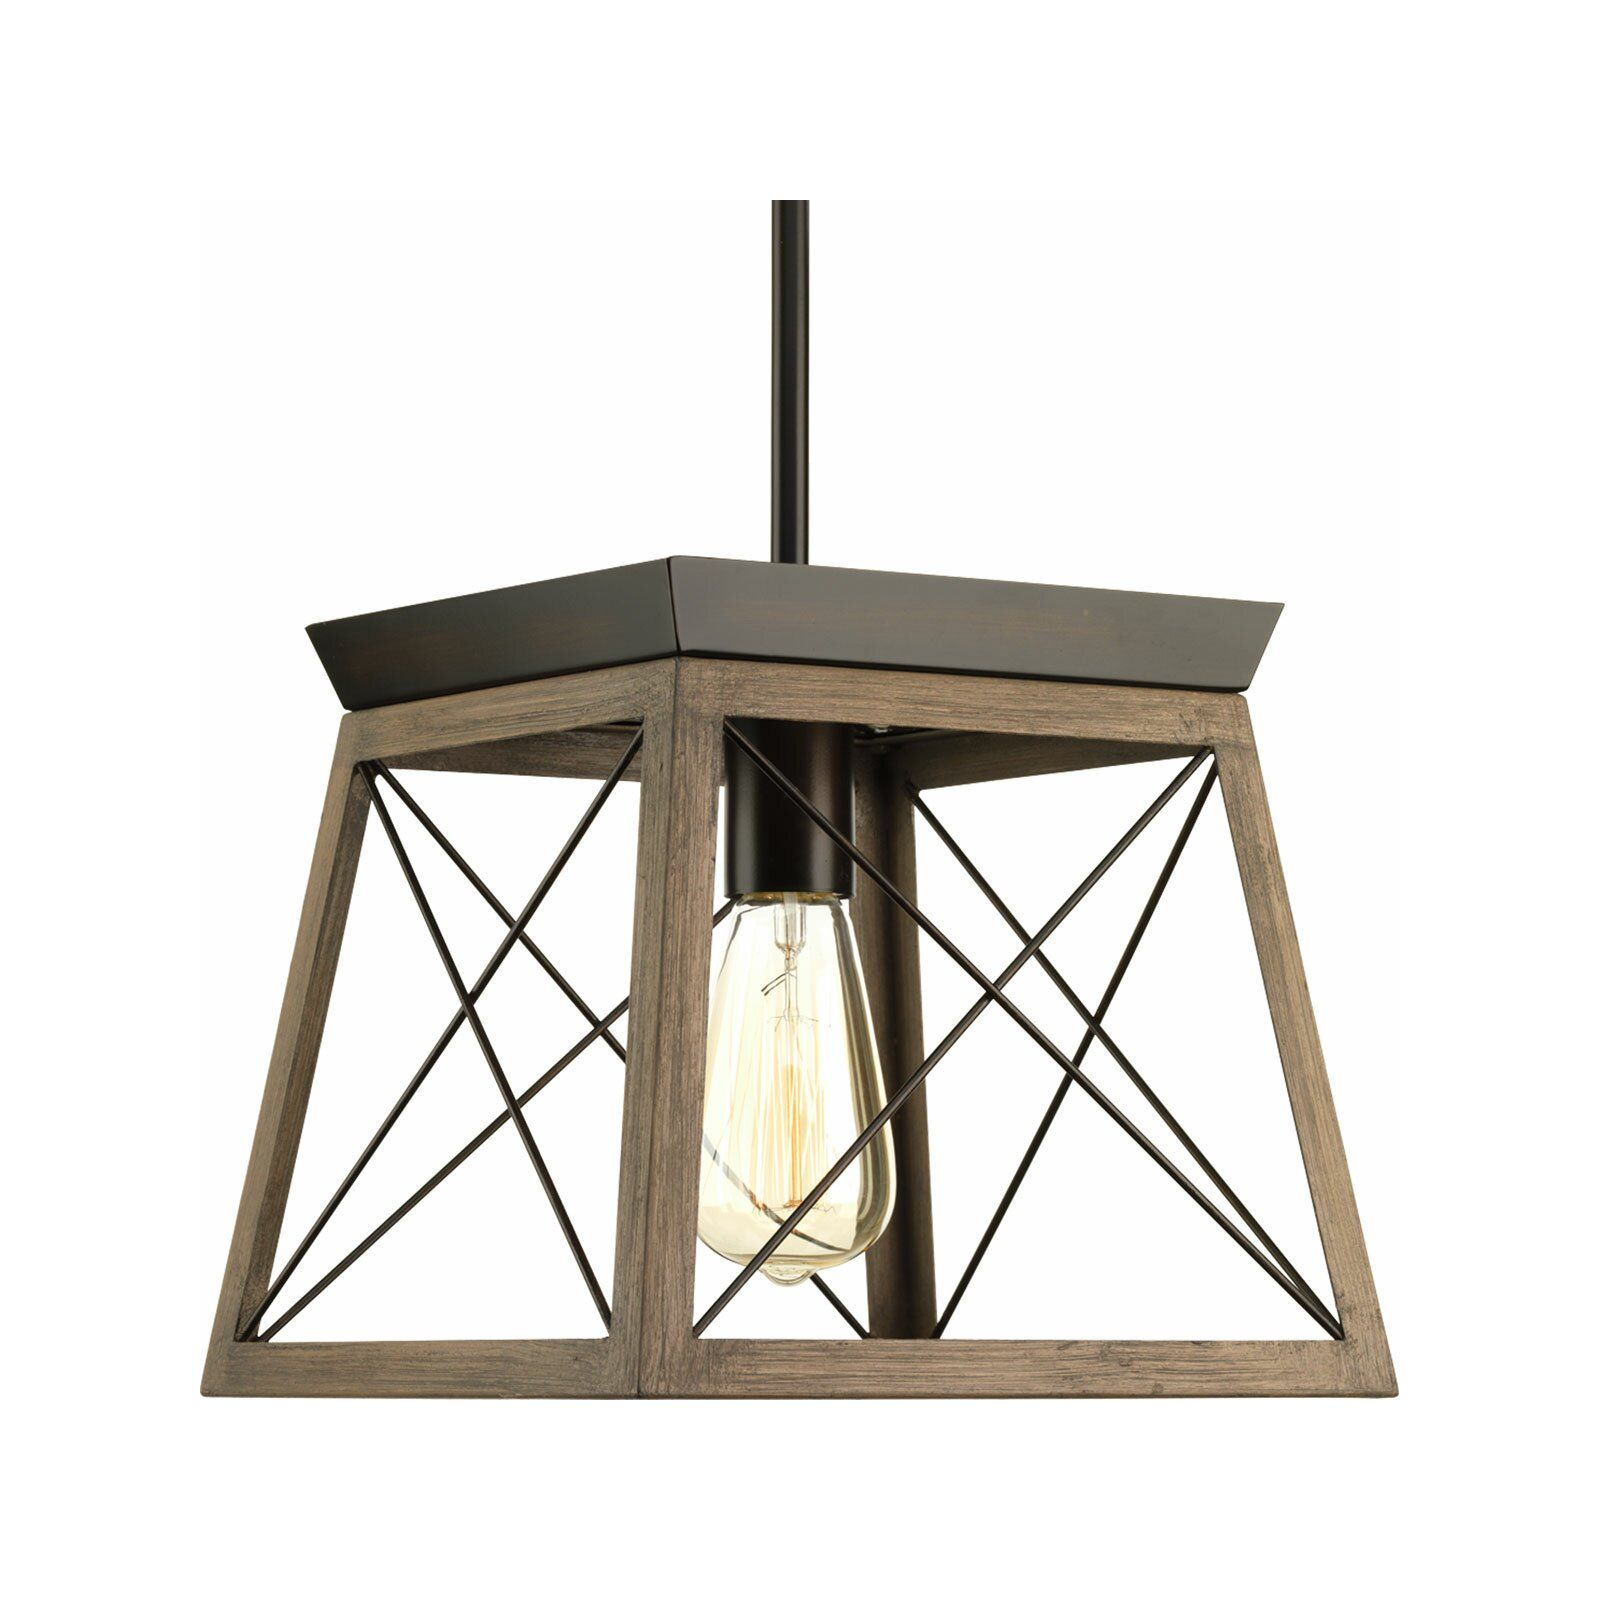 Delon 1 Light Lantern Pendant In 2019 | Home | Lantern Throughout Delon 1 Light Lantern Geometric Pendants (Gallery 6 of 30)